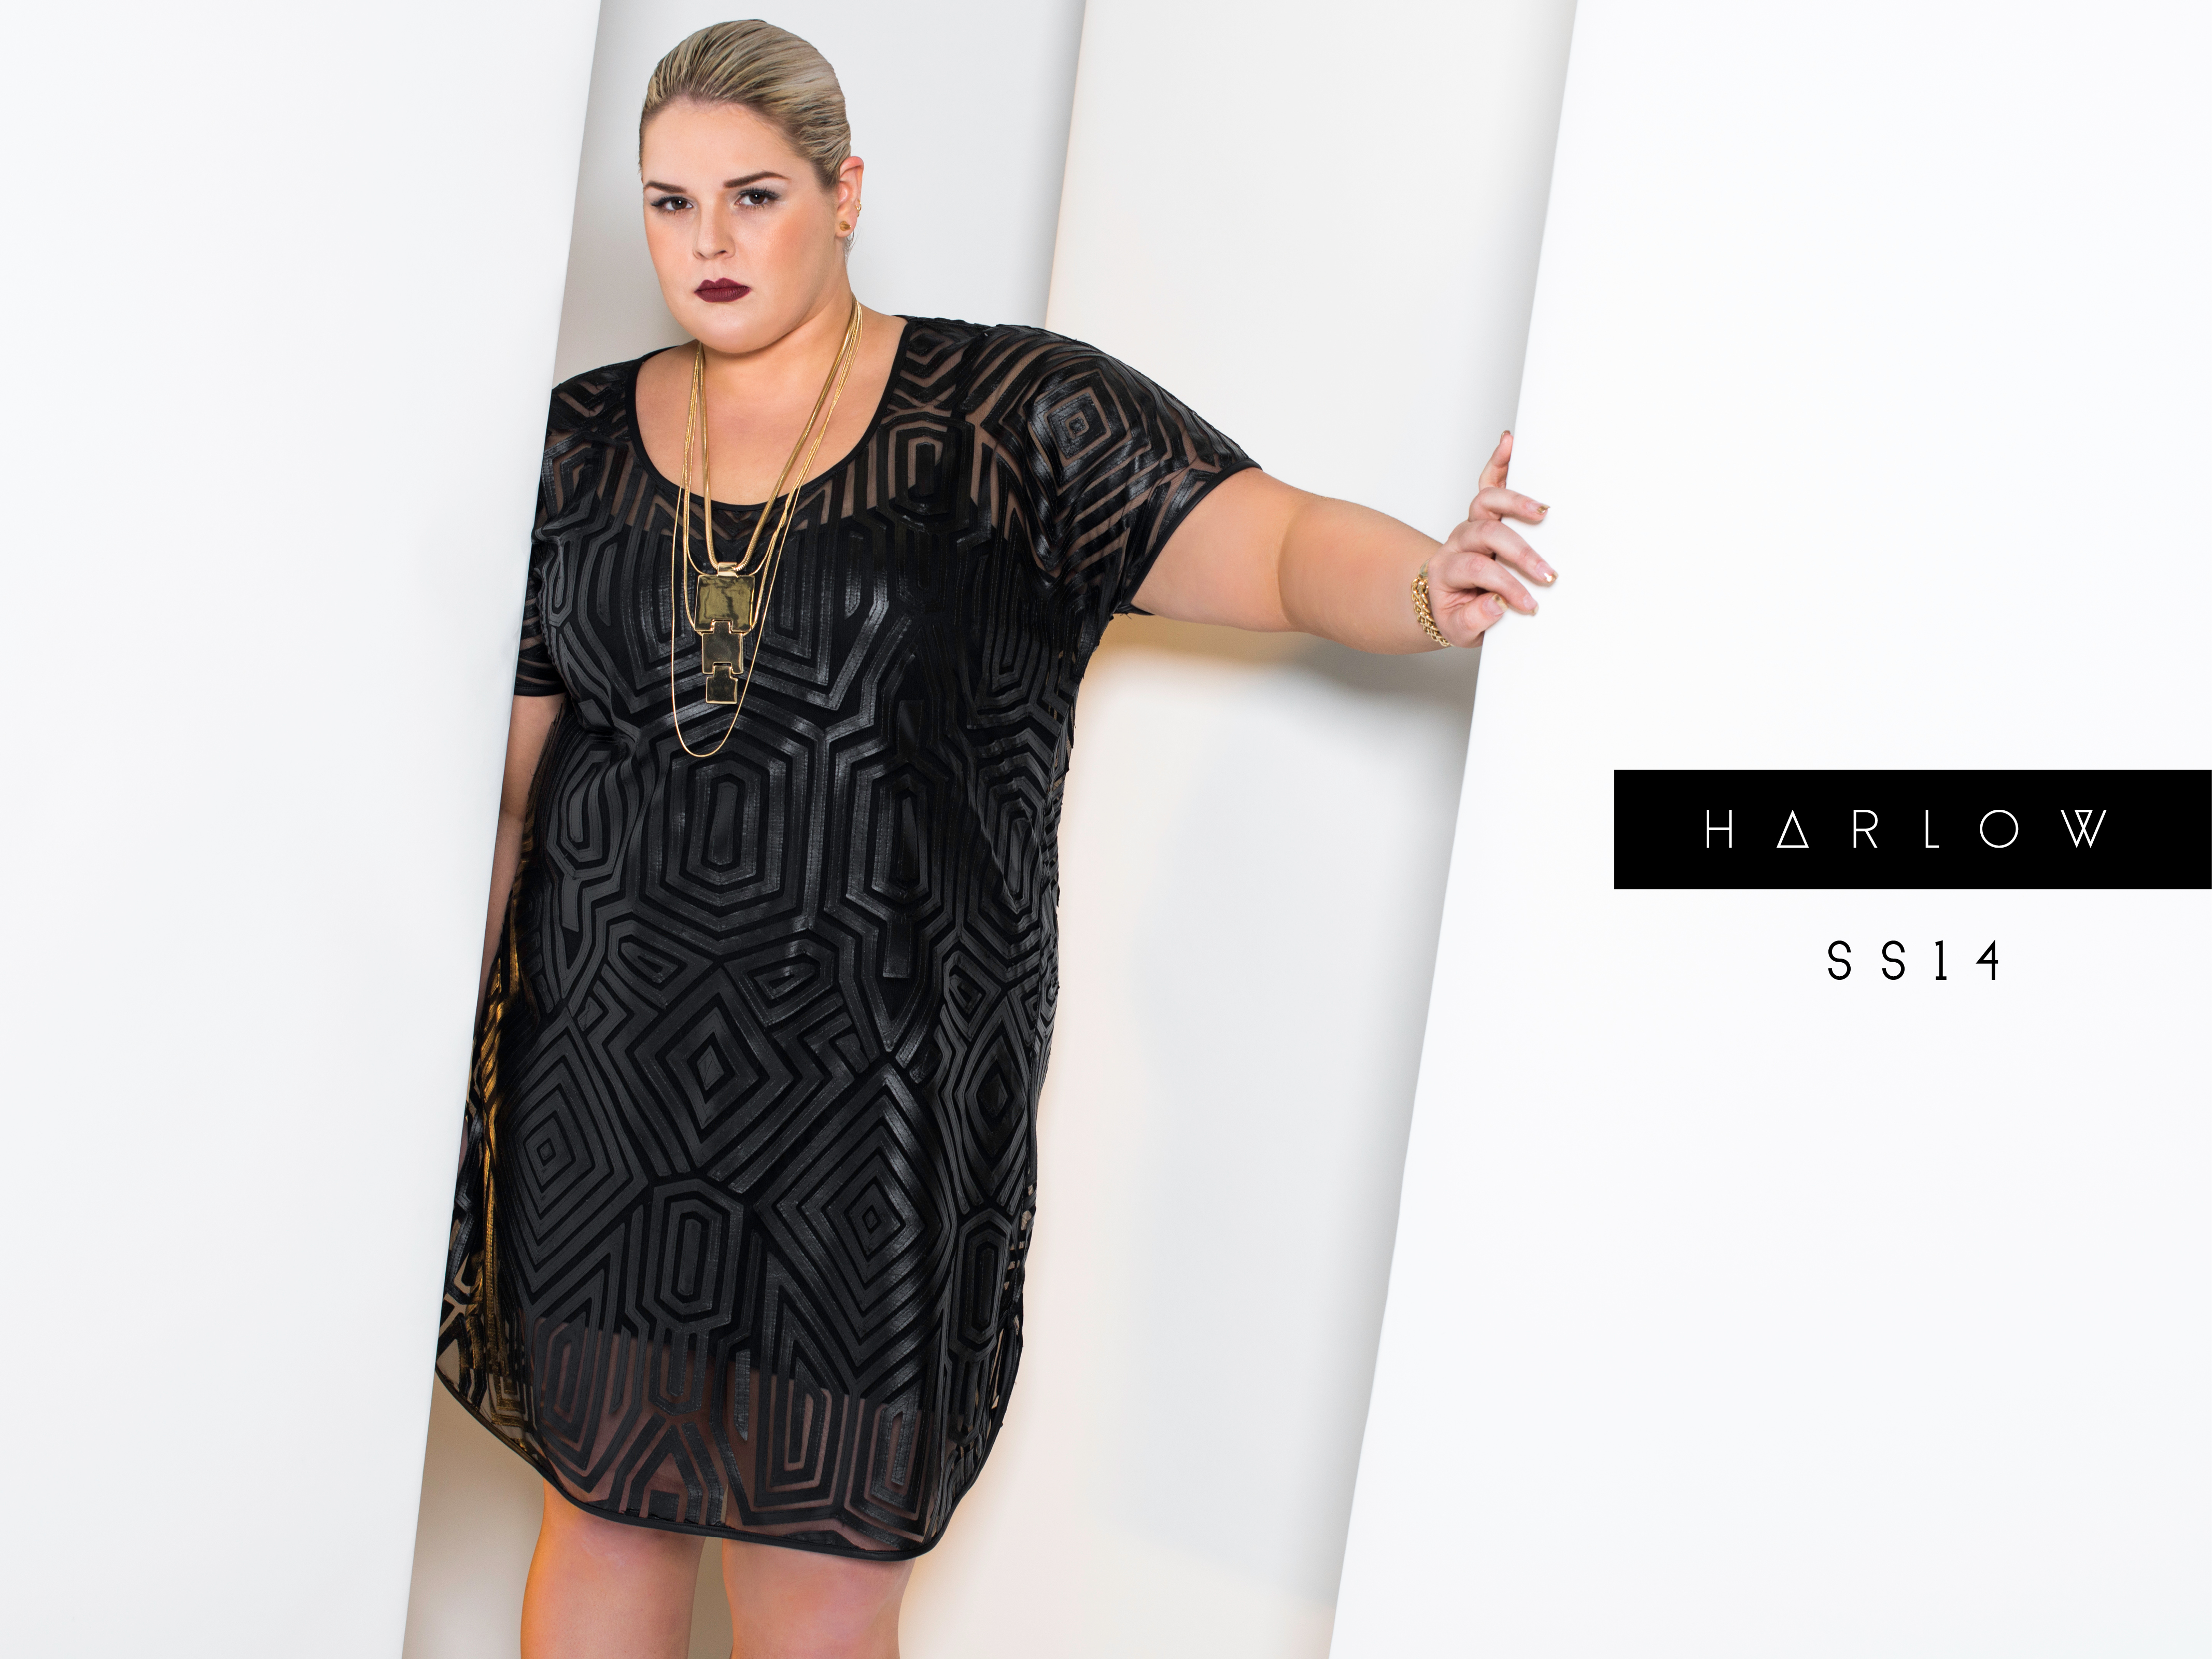 Harlow bring sports luxe to summer